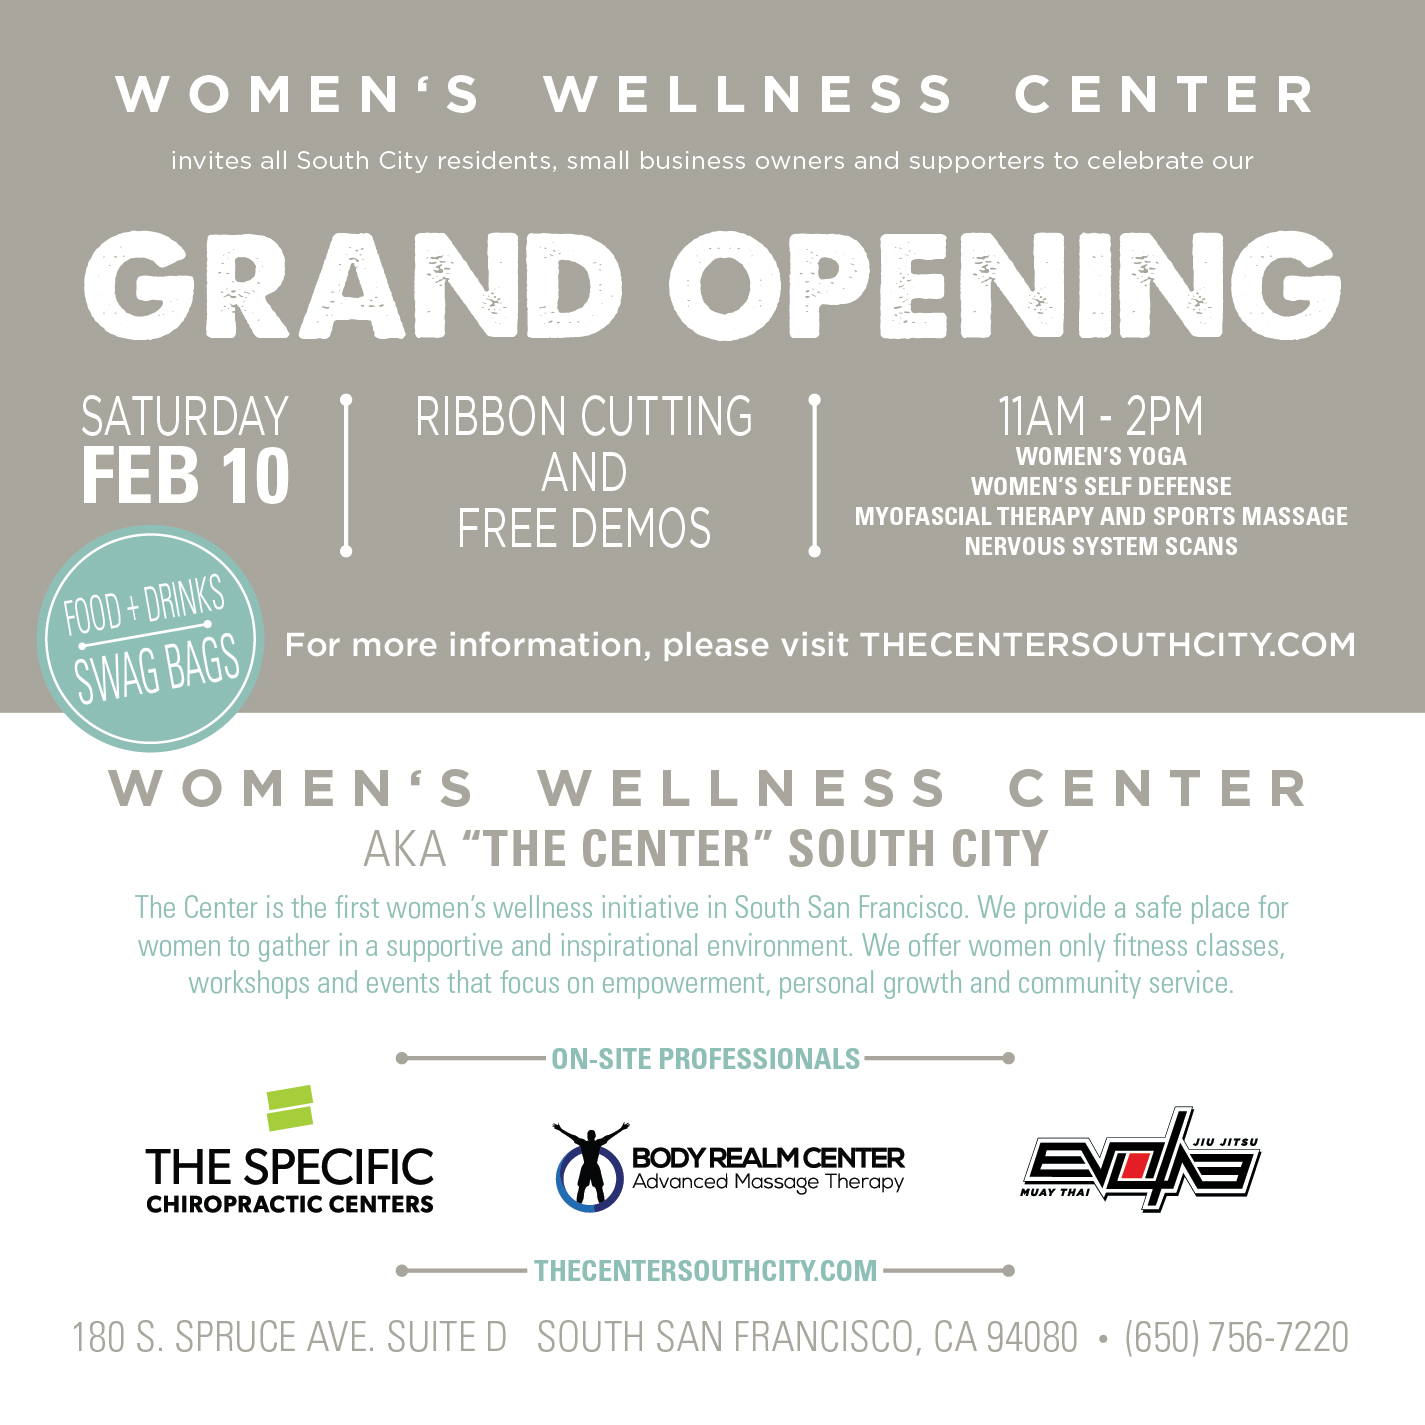 Women's Wellness Center – South San Francisco Grand Opening February 10th 11 AM – 2 PM